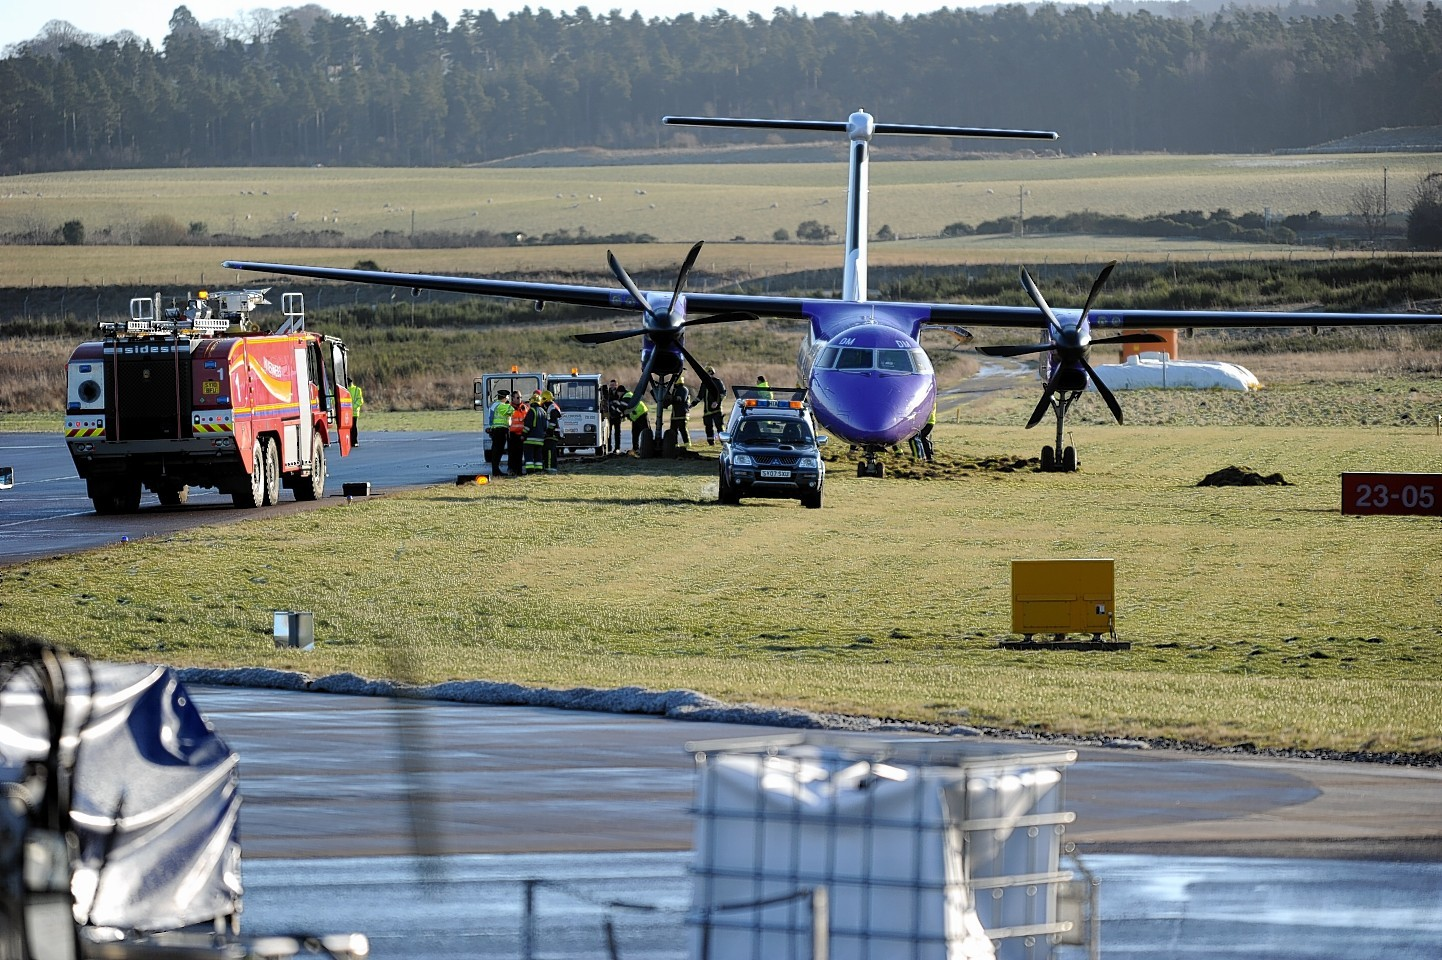 The plane was carrying 48 passengers when it veered off the runway